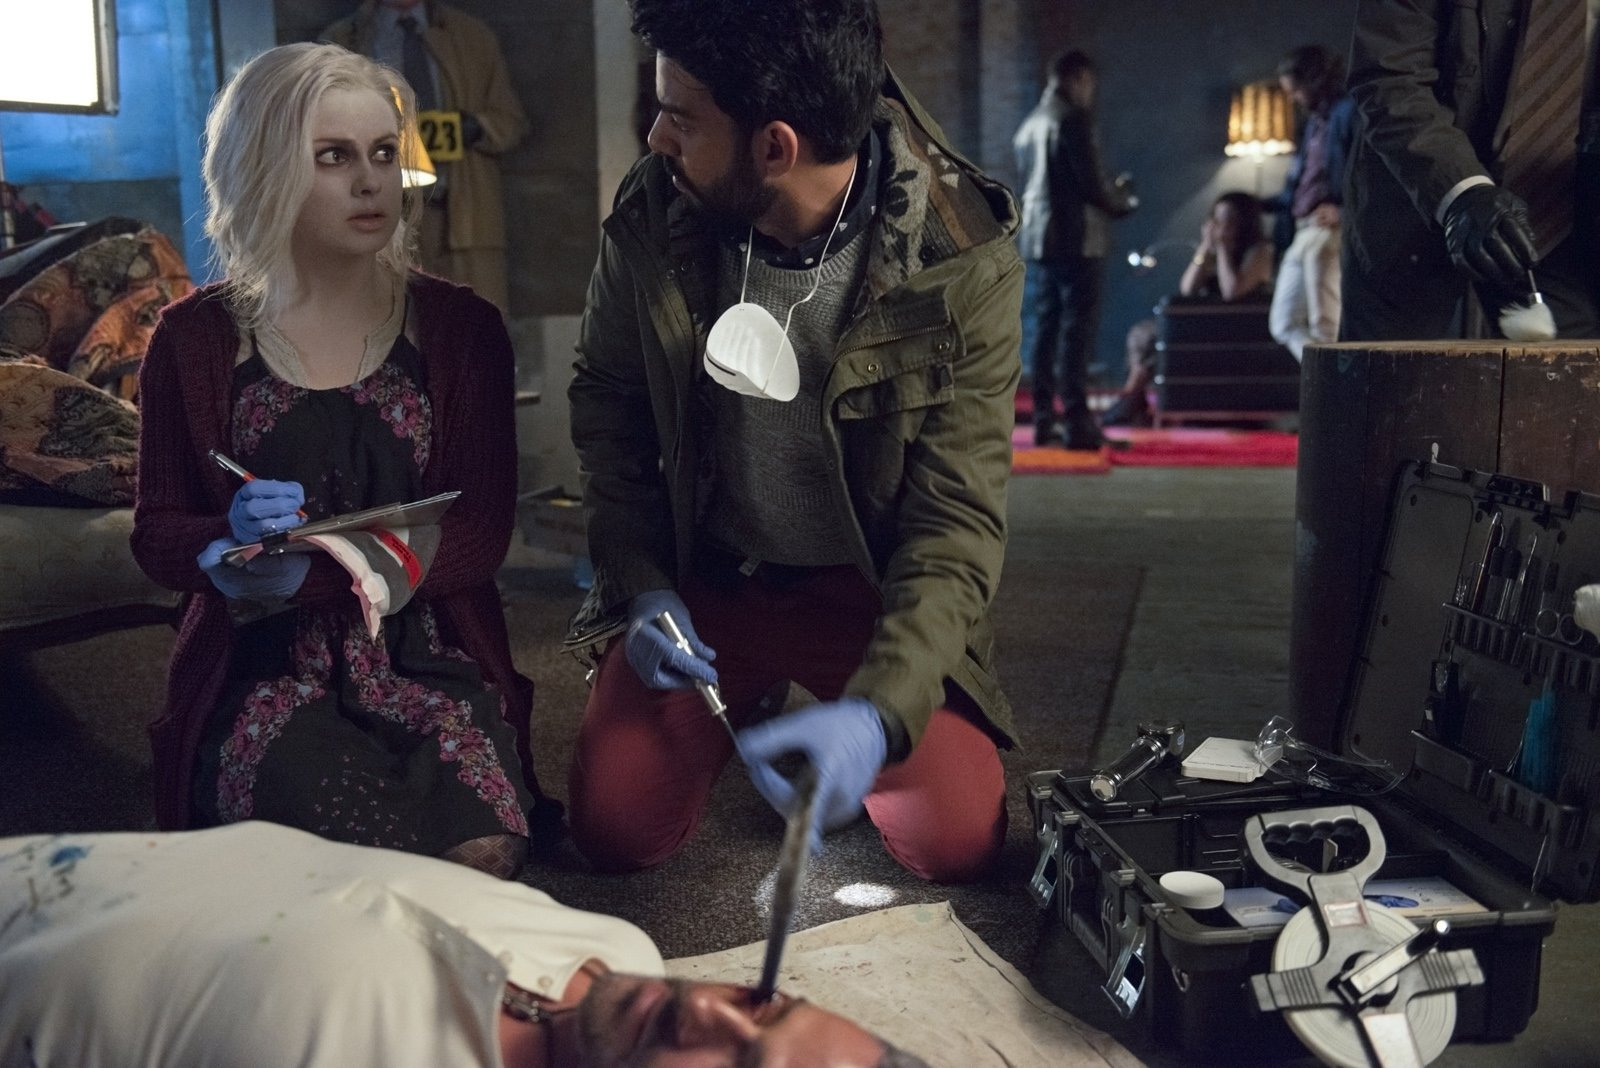 """iZombie -- """"Brother, Can You Spare A Brain?"""" -- Image Number: ZMB102B_0096 -- Pictured(L-R): Rahul Kohli as Dr. Ravi Chakrabarti and Rose McIver as Olivia """"Liv"""" Moore -- Photo: Cate Cameron/The CW -- © 2015 The CW Network, LLC. All rights reserved."""